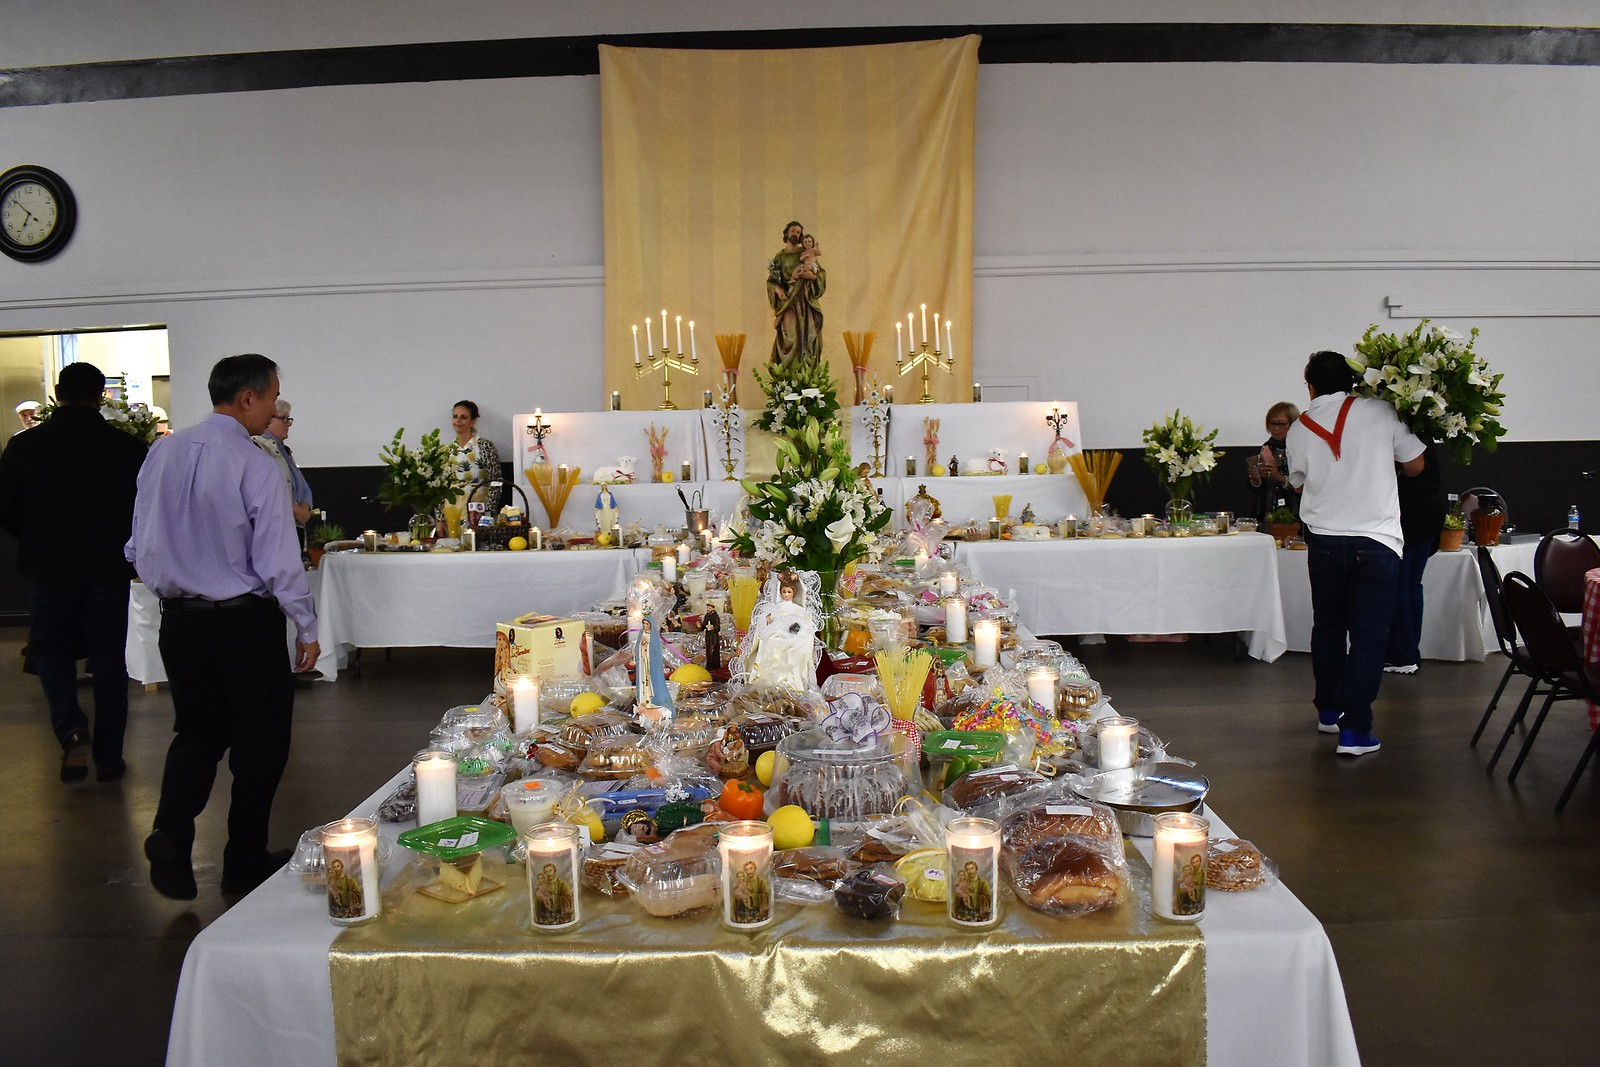 The Solemnity of St. Joseph and St. Joseph's Table